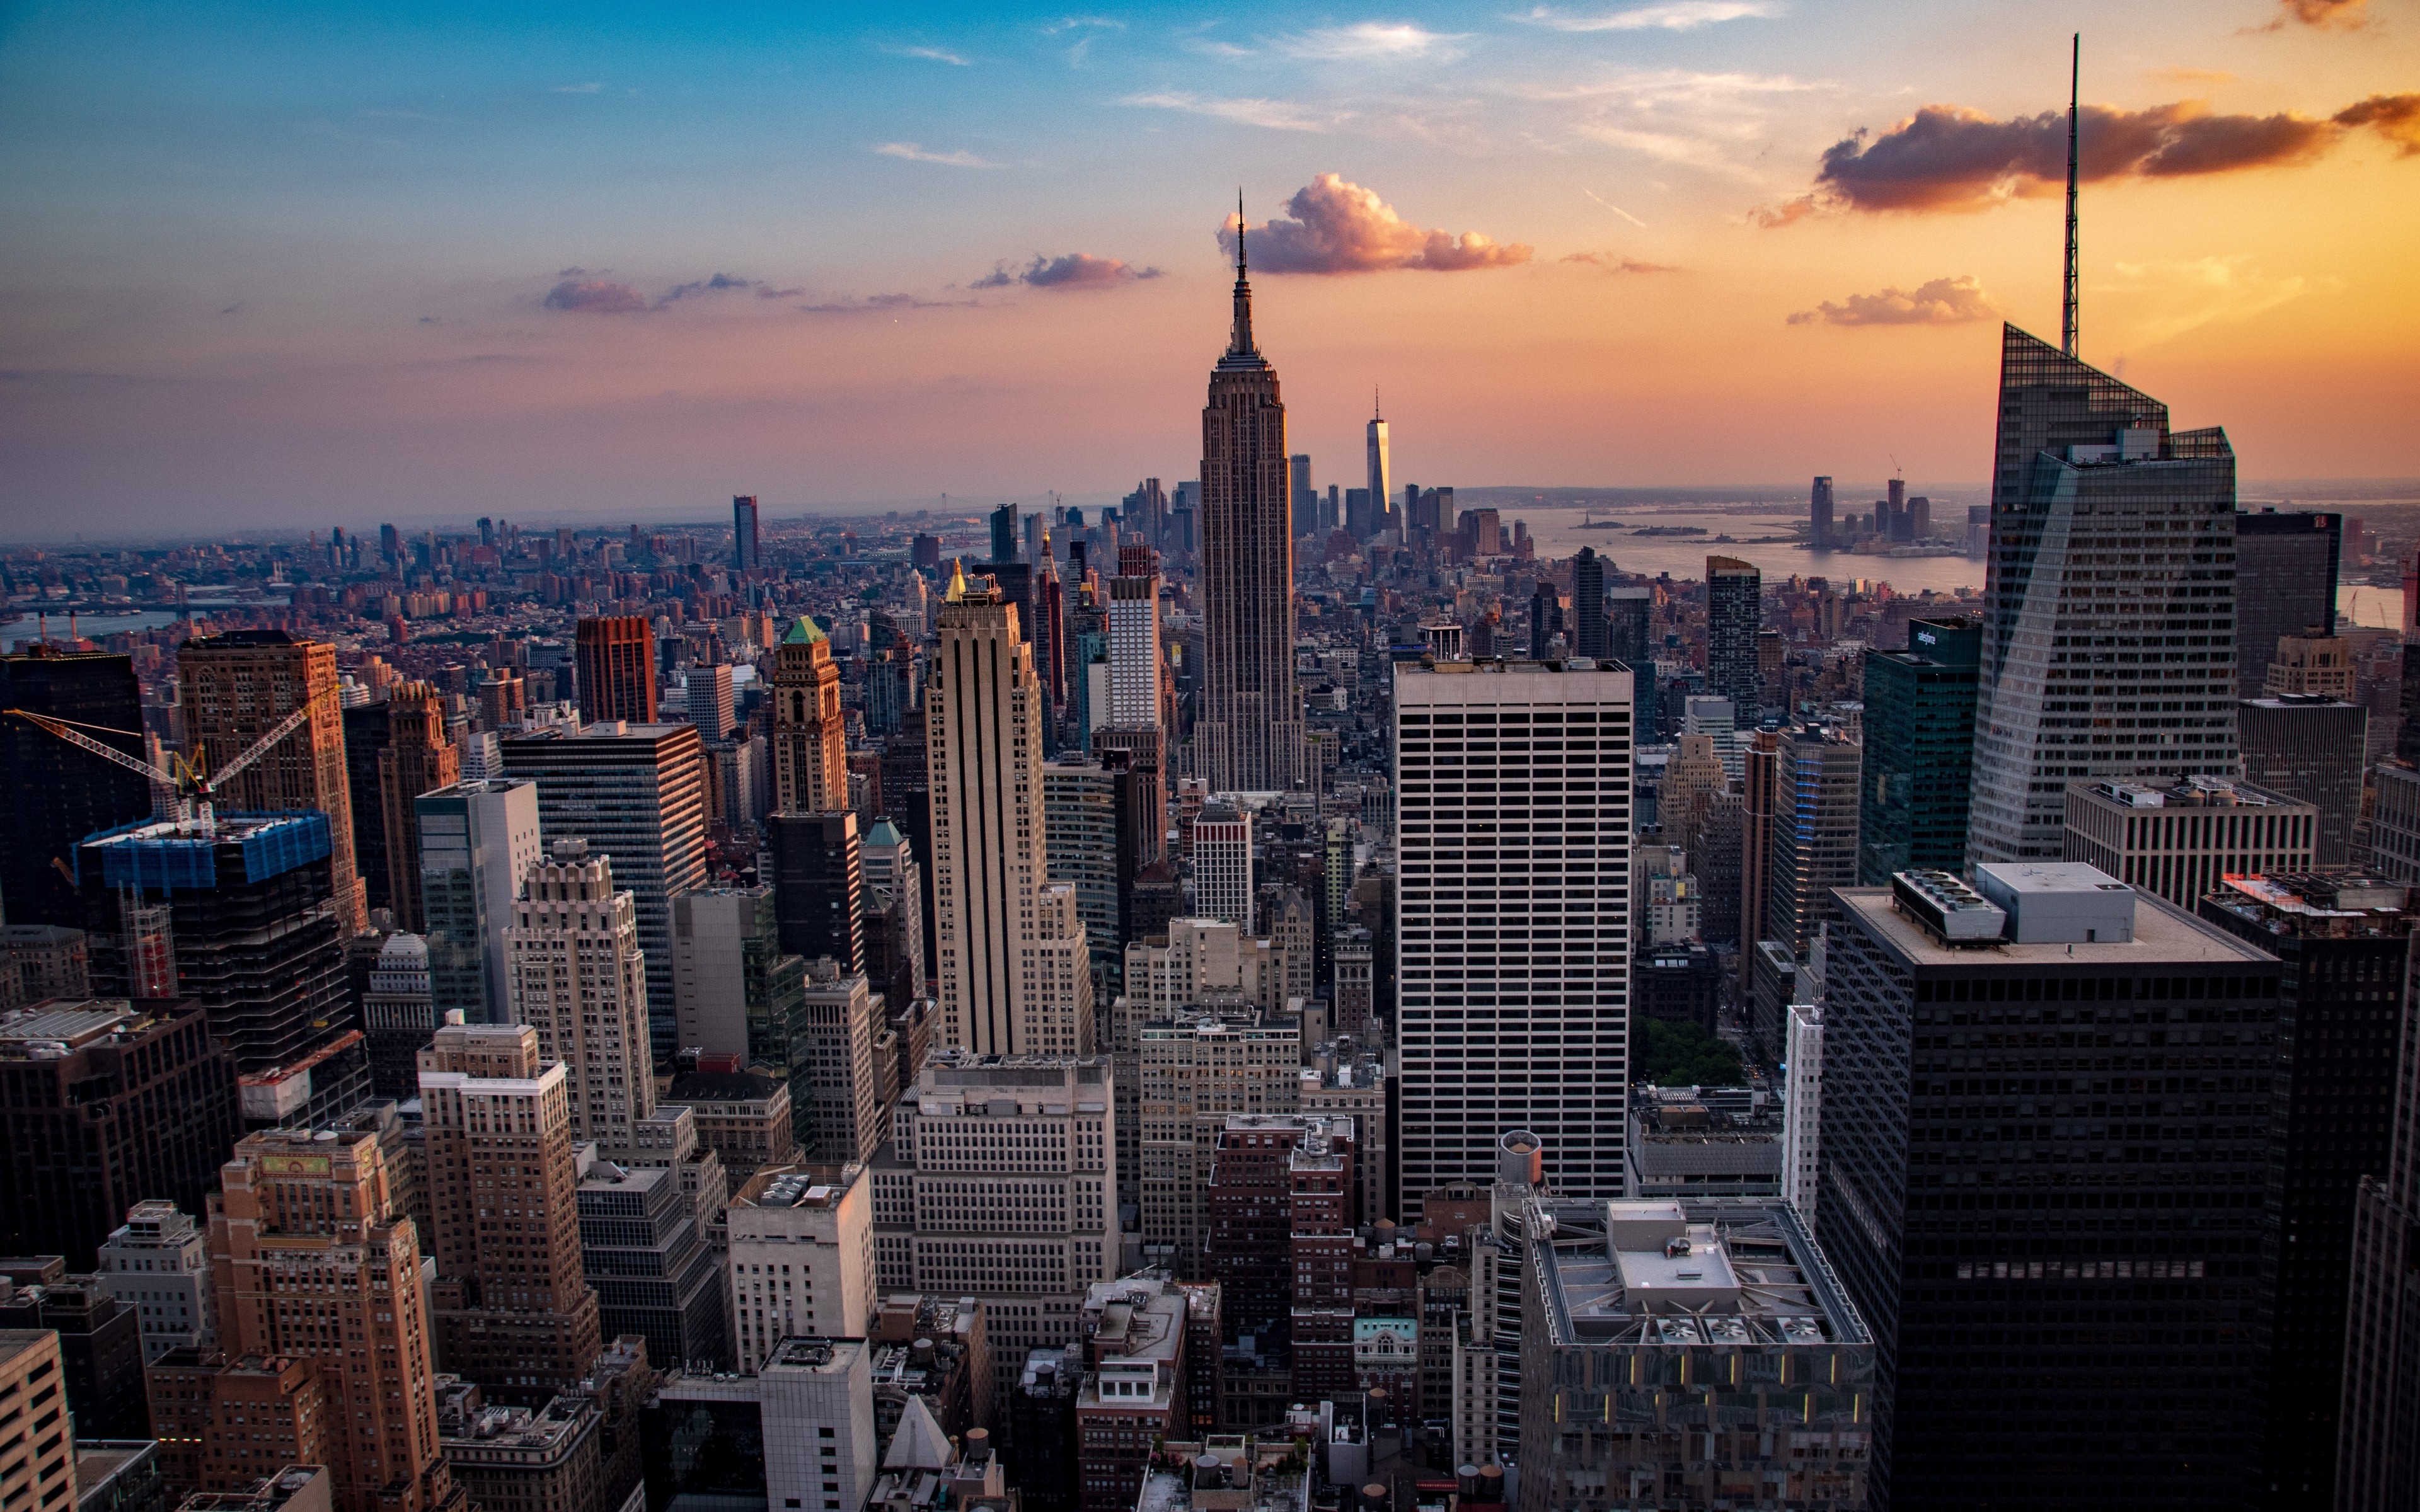 New York Wallpaper 4k 3840x2400 Download Hd Wallpaper Wallpapertip